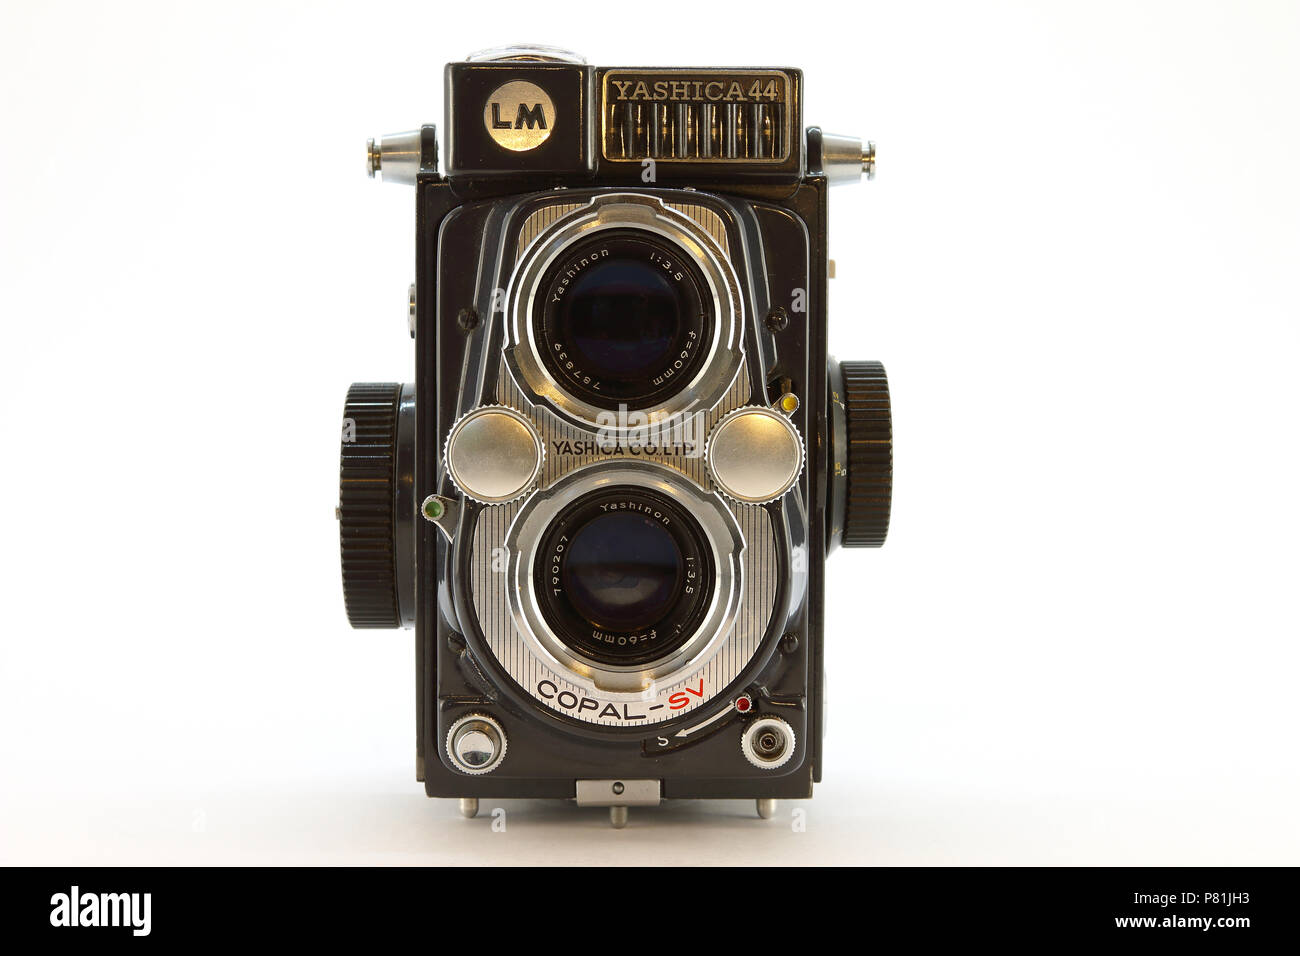 Yashica-44LM from the 1950's close up - Stock Image